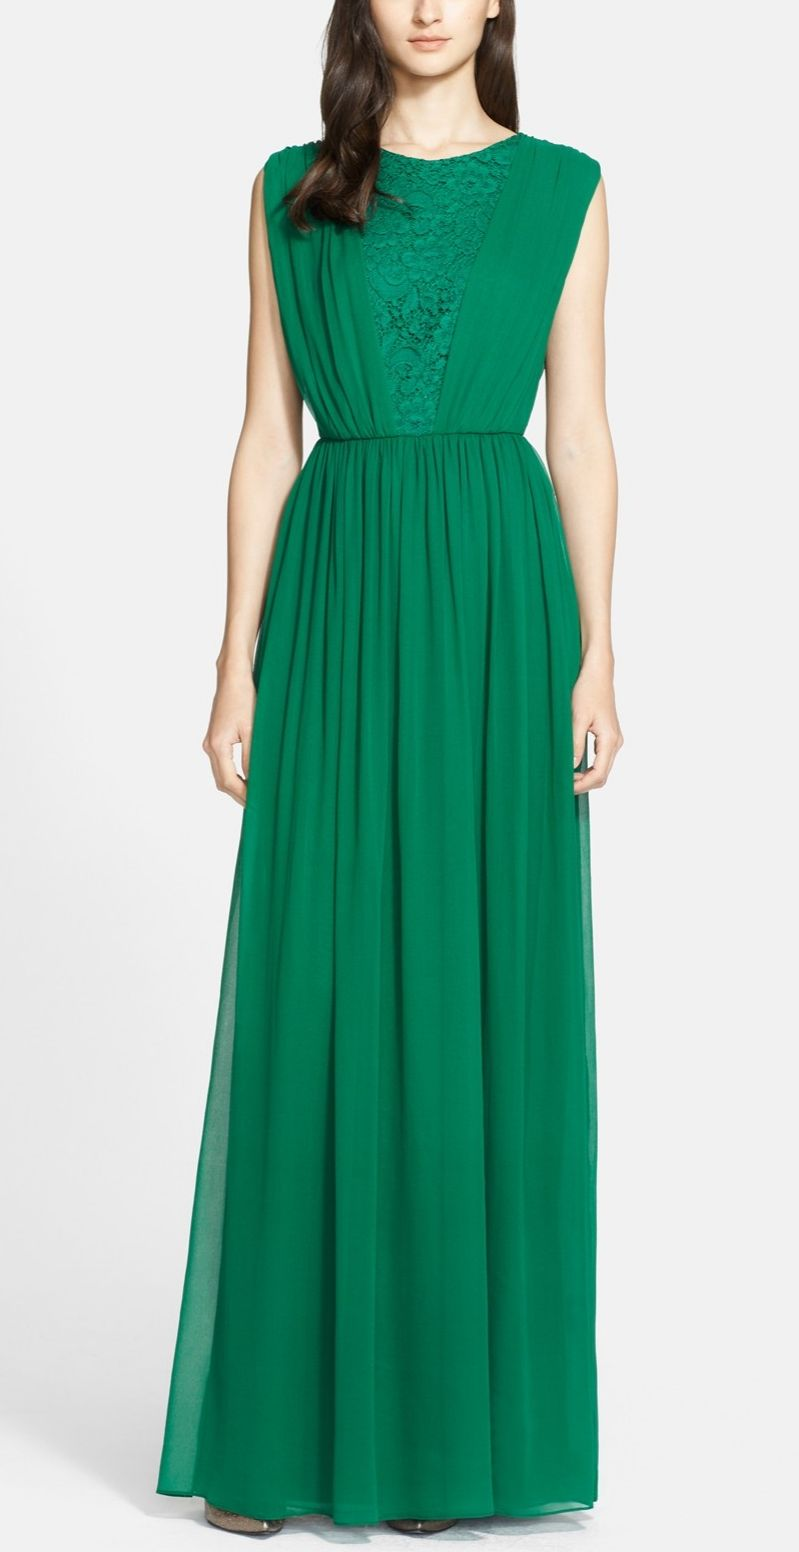 Grecian gown fashion pinterest grecian gown gowns and emeralds